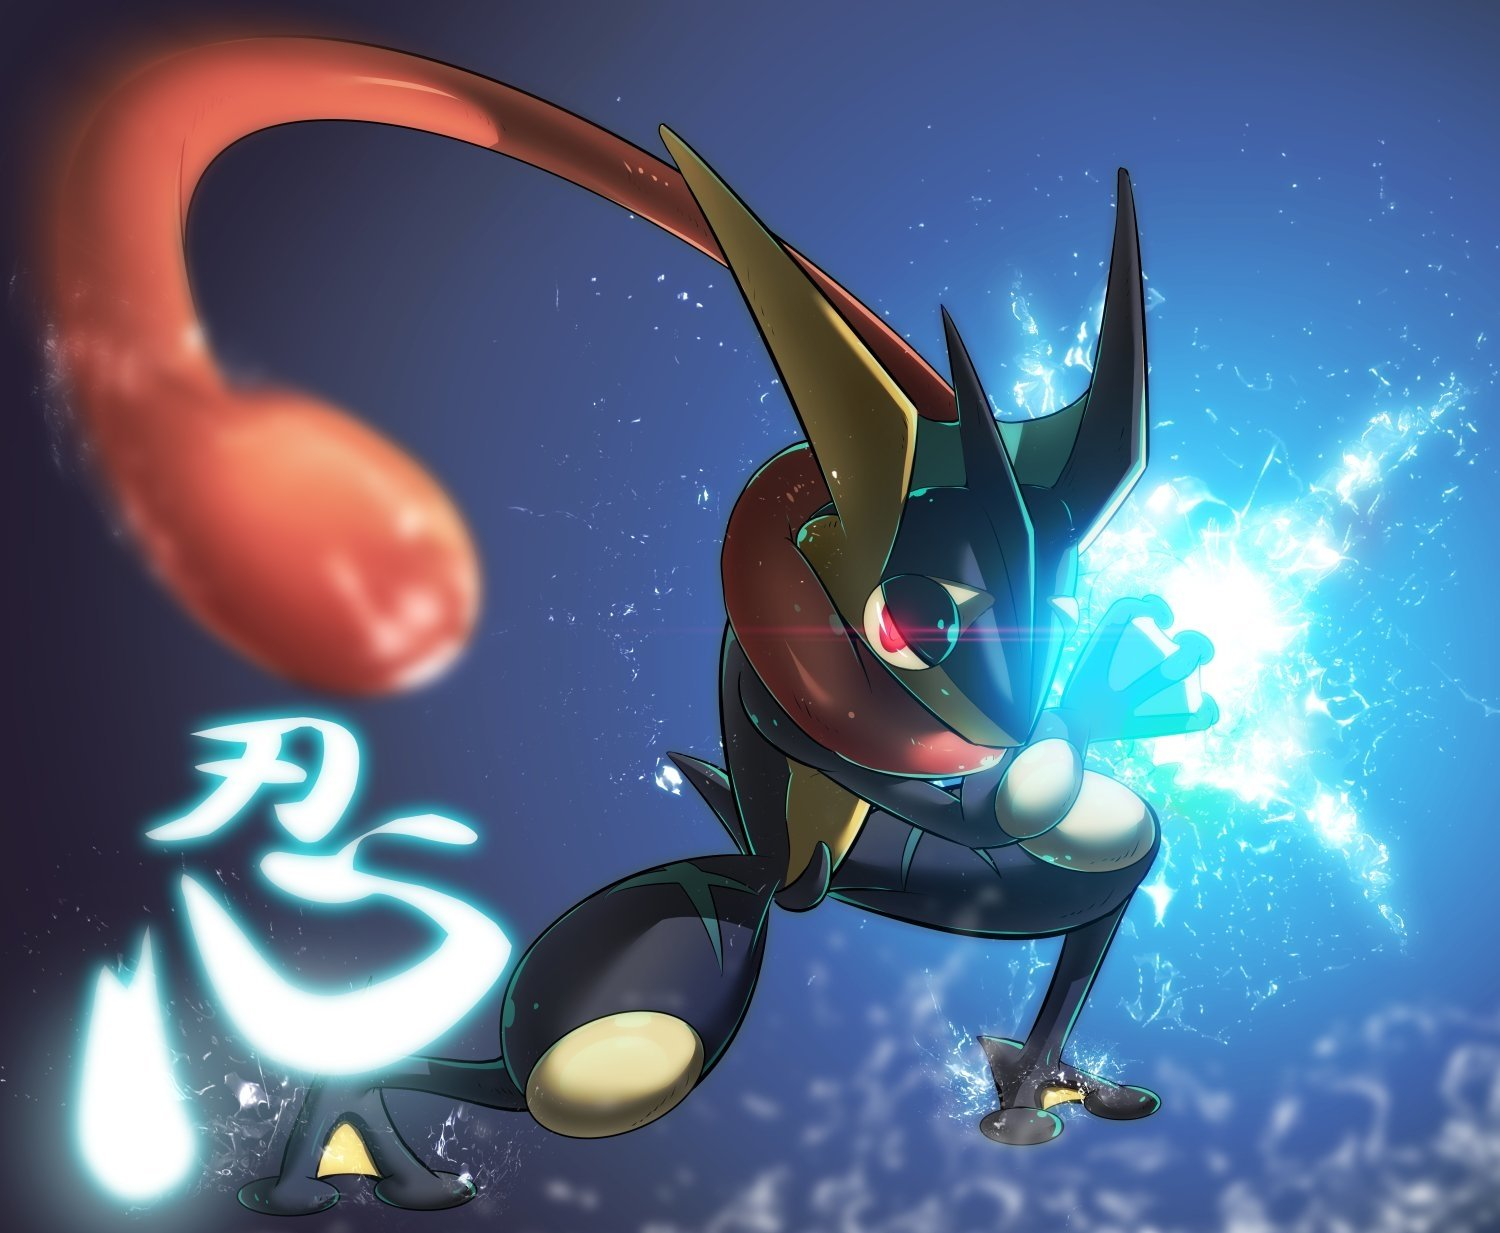 10 Greninja Pokemon HD Wallpapers